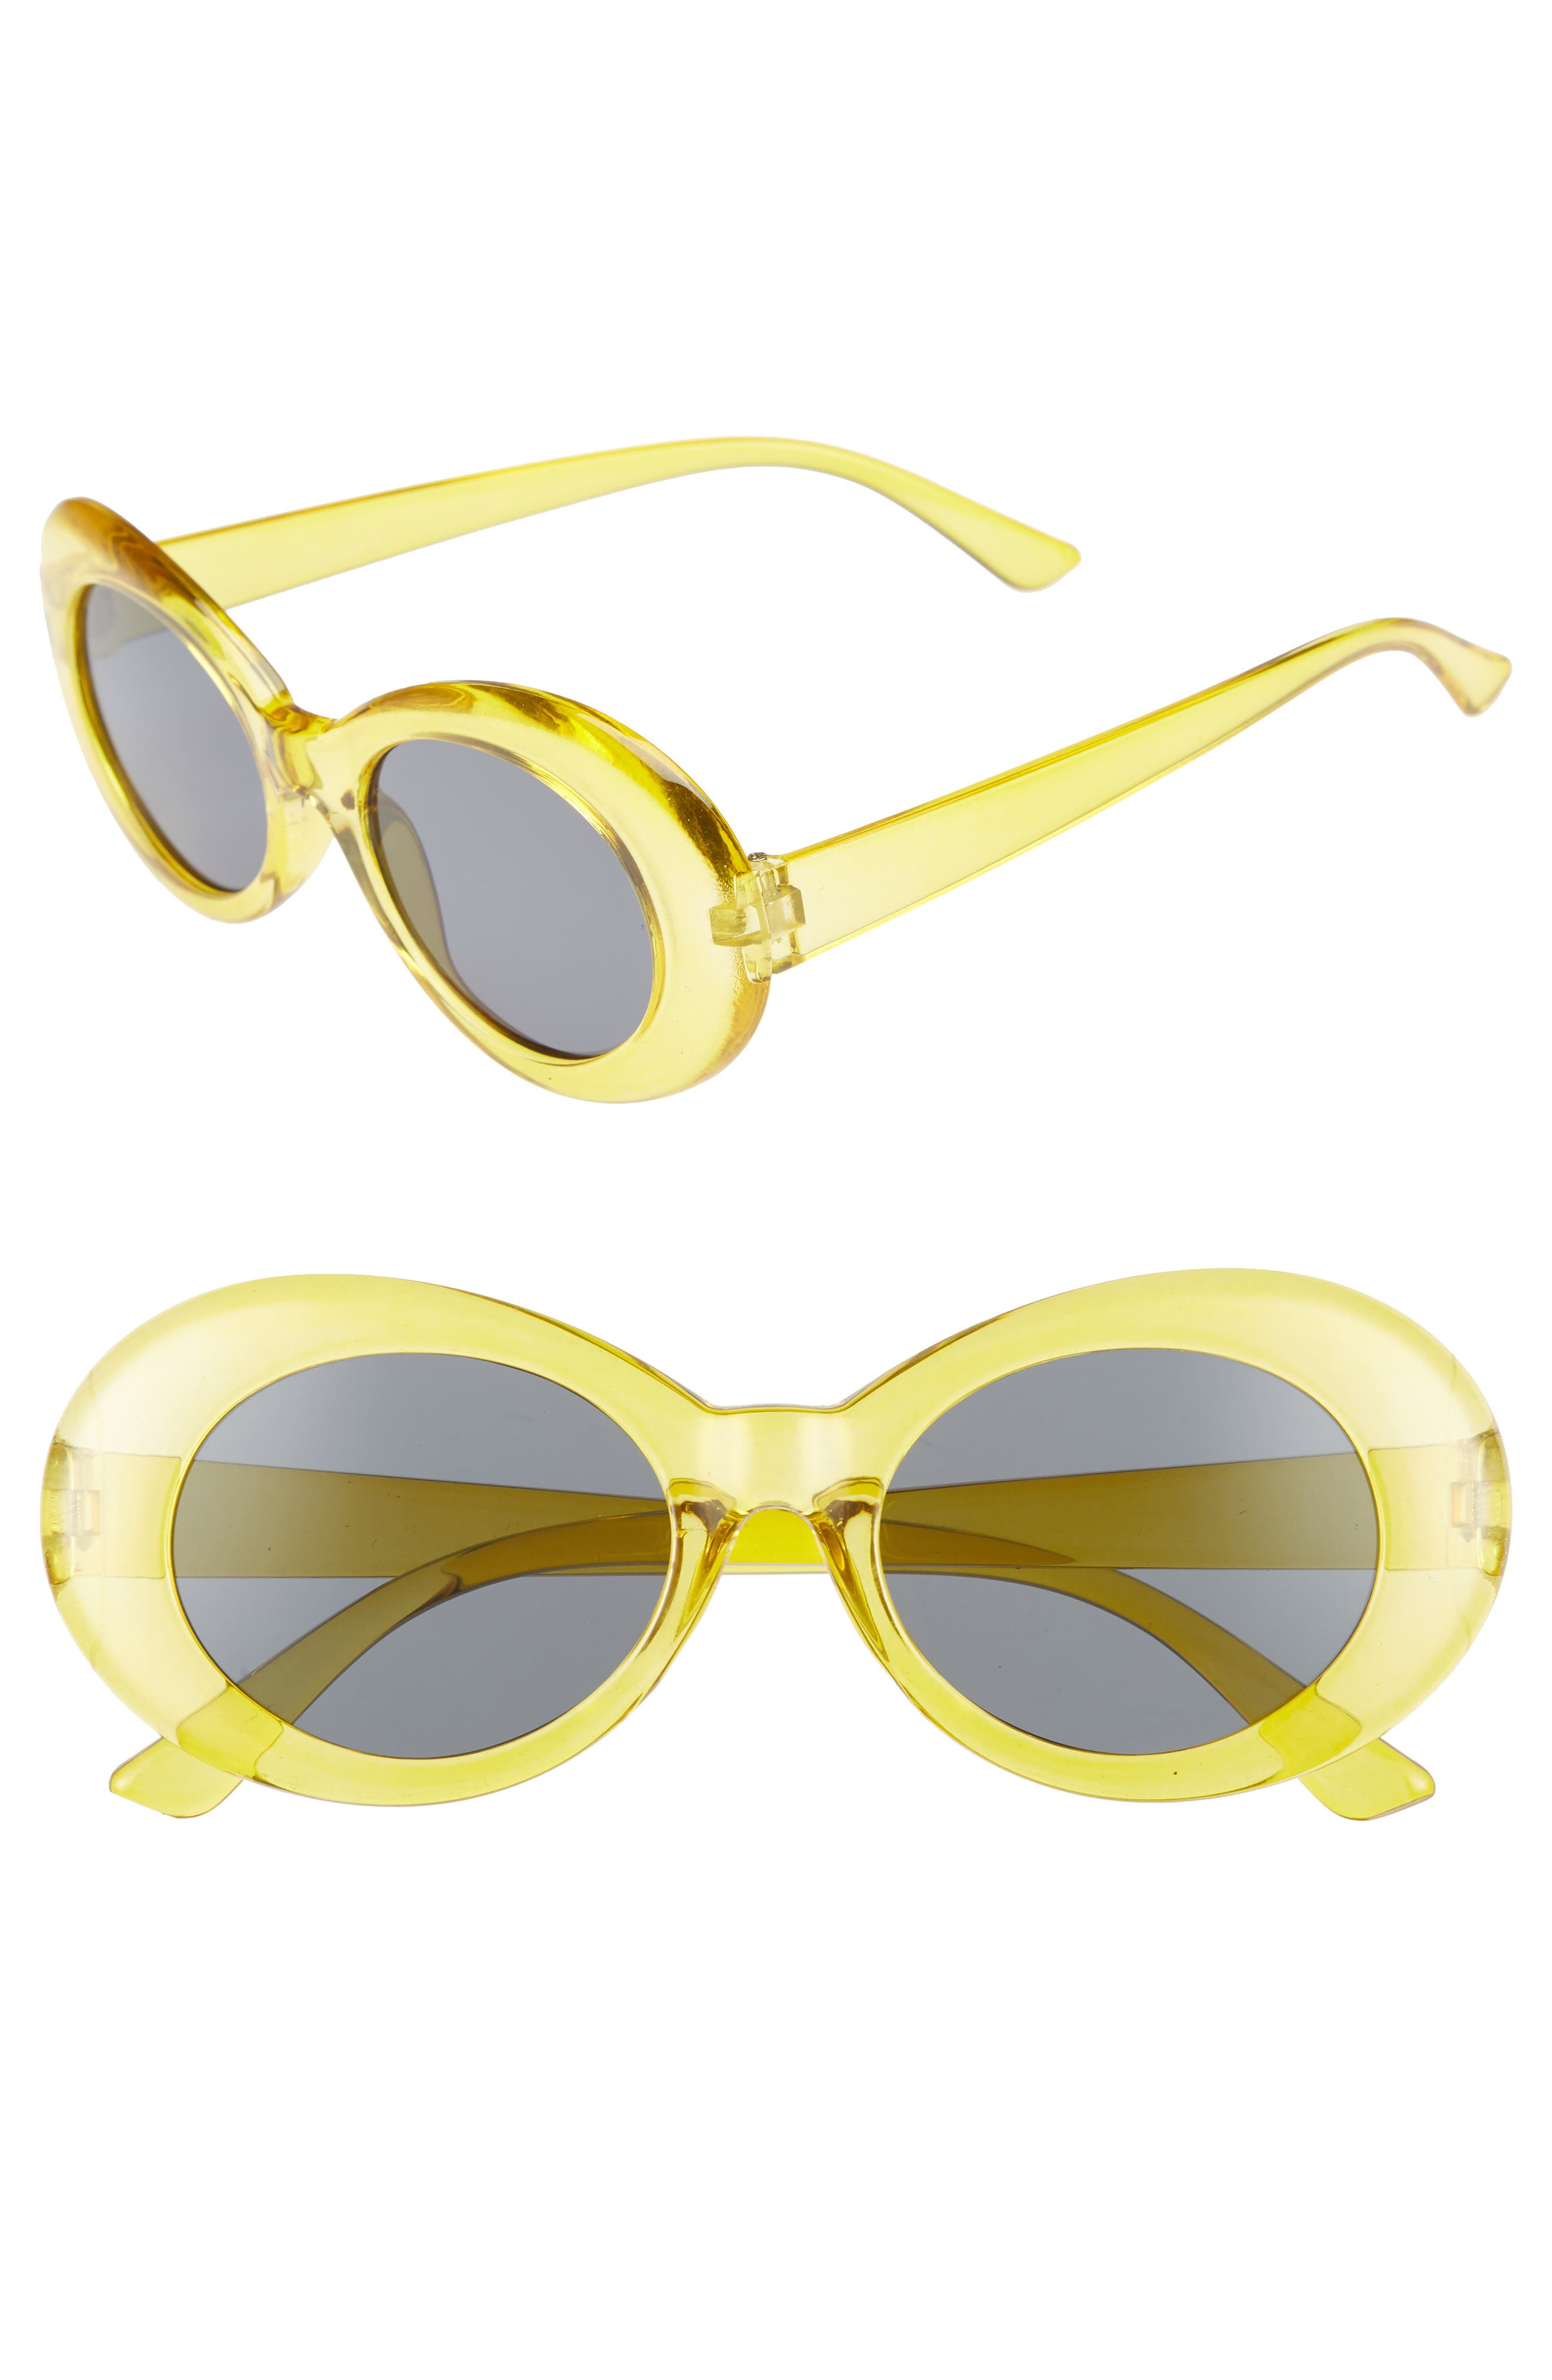 50mm Round Sunglasses,                             Main thumbnail 1, color,                             Clear Yellow